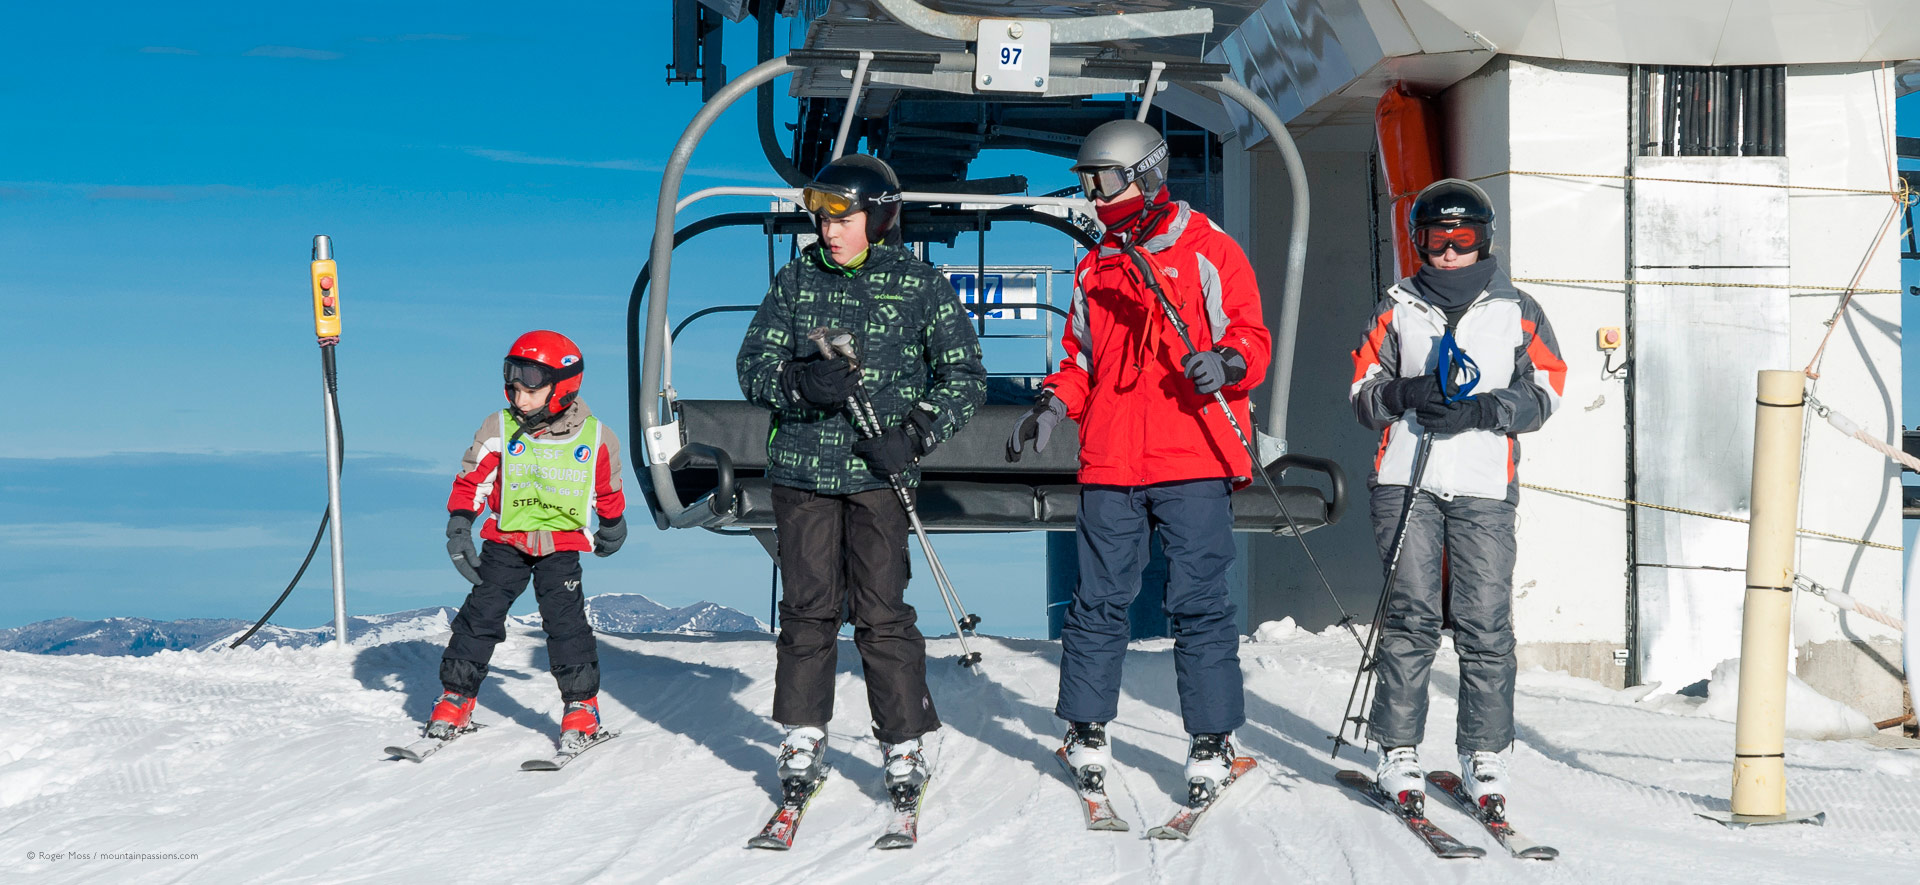 Skier family leaving top station of chair lift